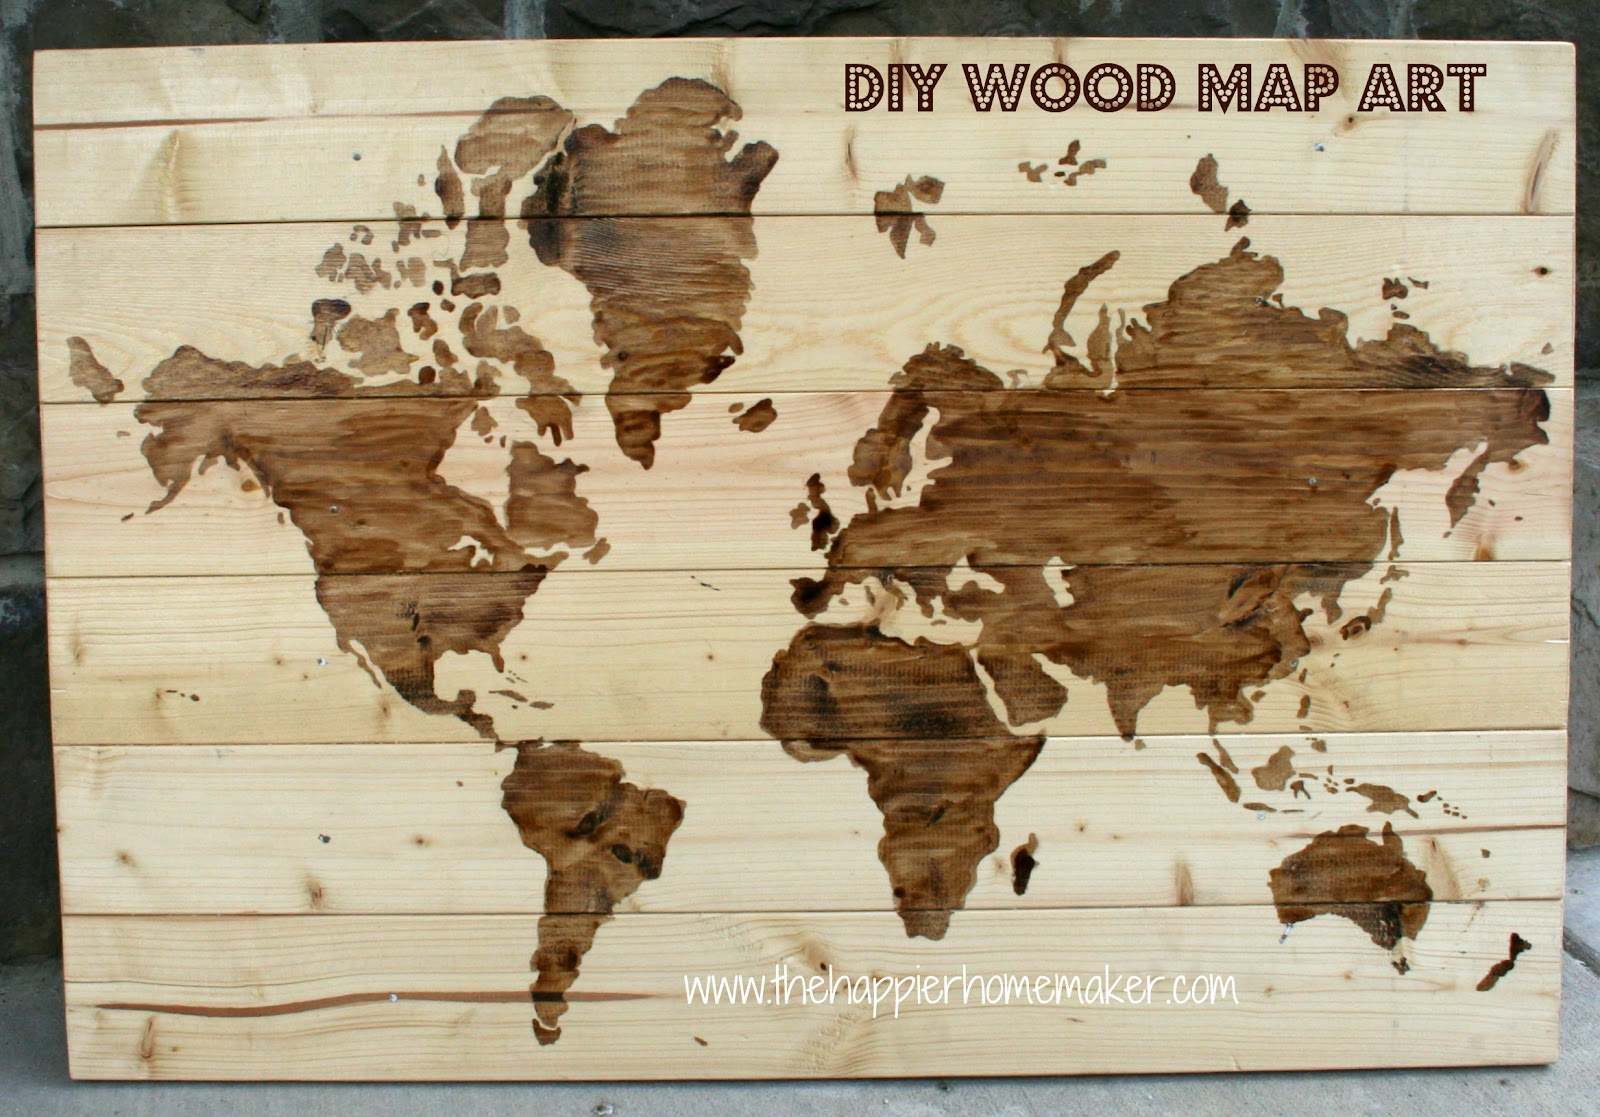 World Map Wood Wall Art diy wooden world map art | the happier homemaker